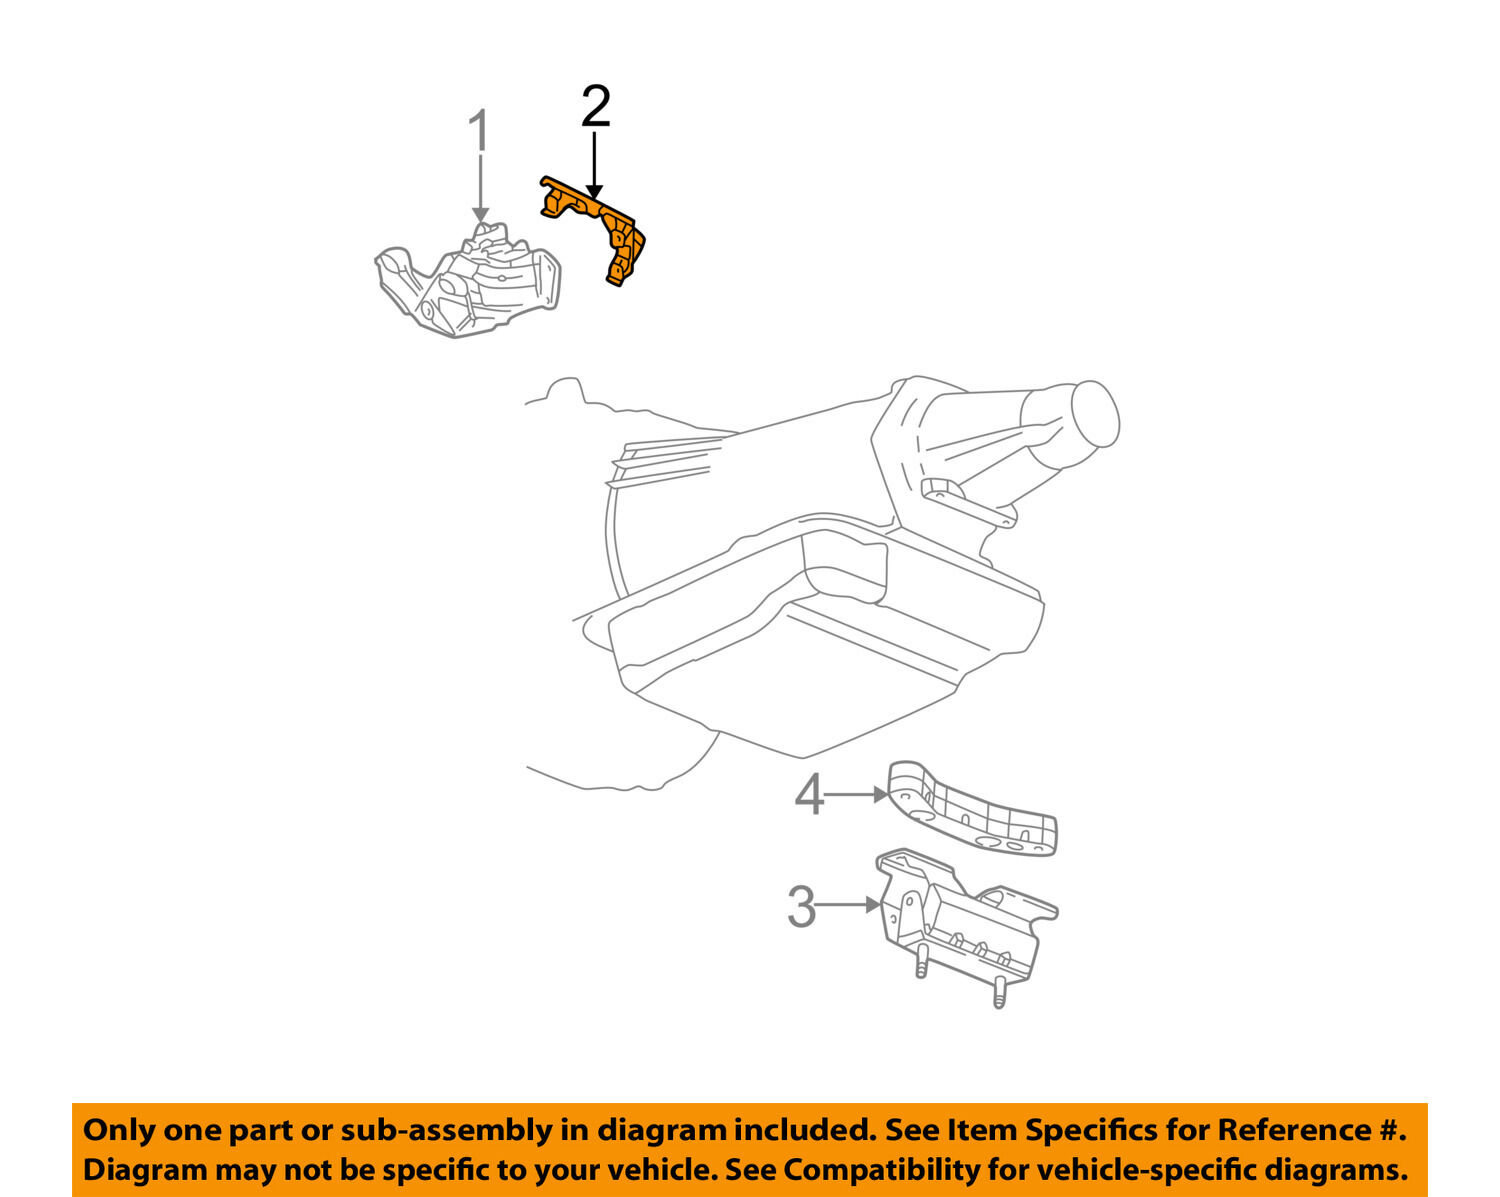 kia pride gtx engine diagram online wiring diagramkia pride engine diagram best wiring libraryhyundai santa fe engine mounts diagram kia pride engine diagram